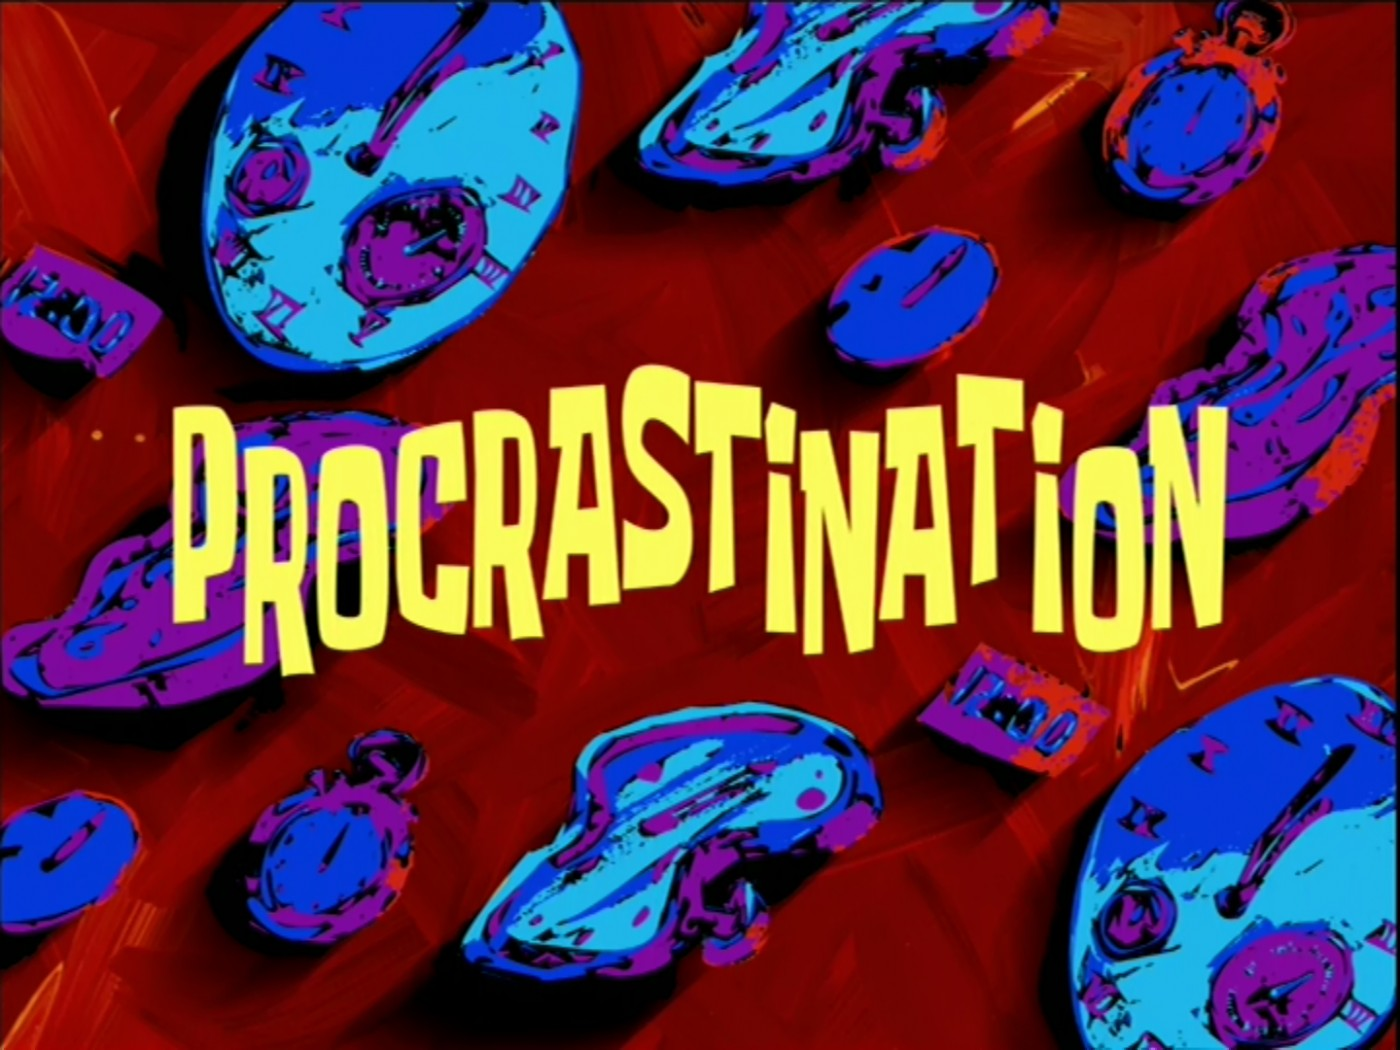 009 Procrastinationtranscript Encyclopedia Spongebobia Fandom Spongebob Writing Essay The Latestcb201806220 Gif Font For Hours Meme Rap Surprising House 1400